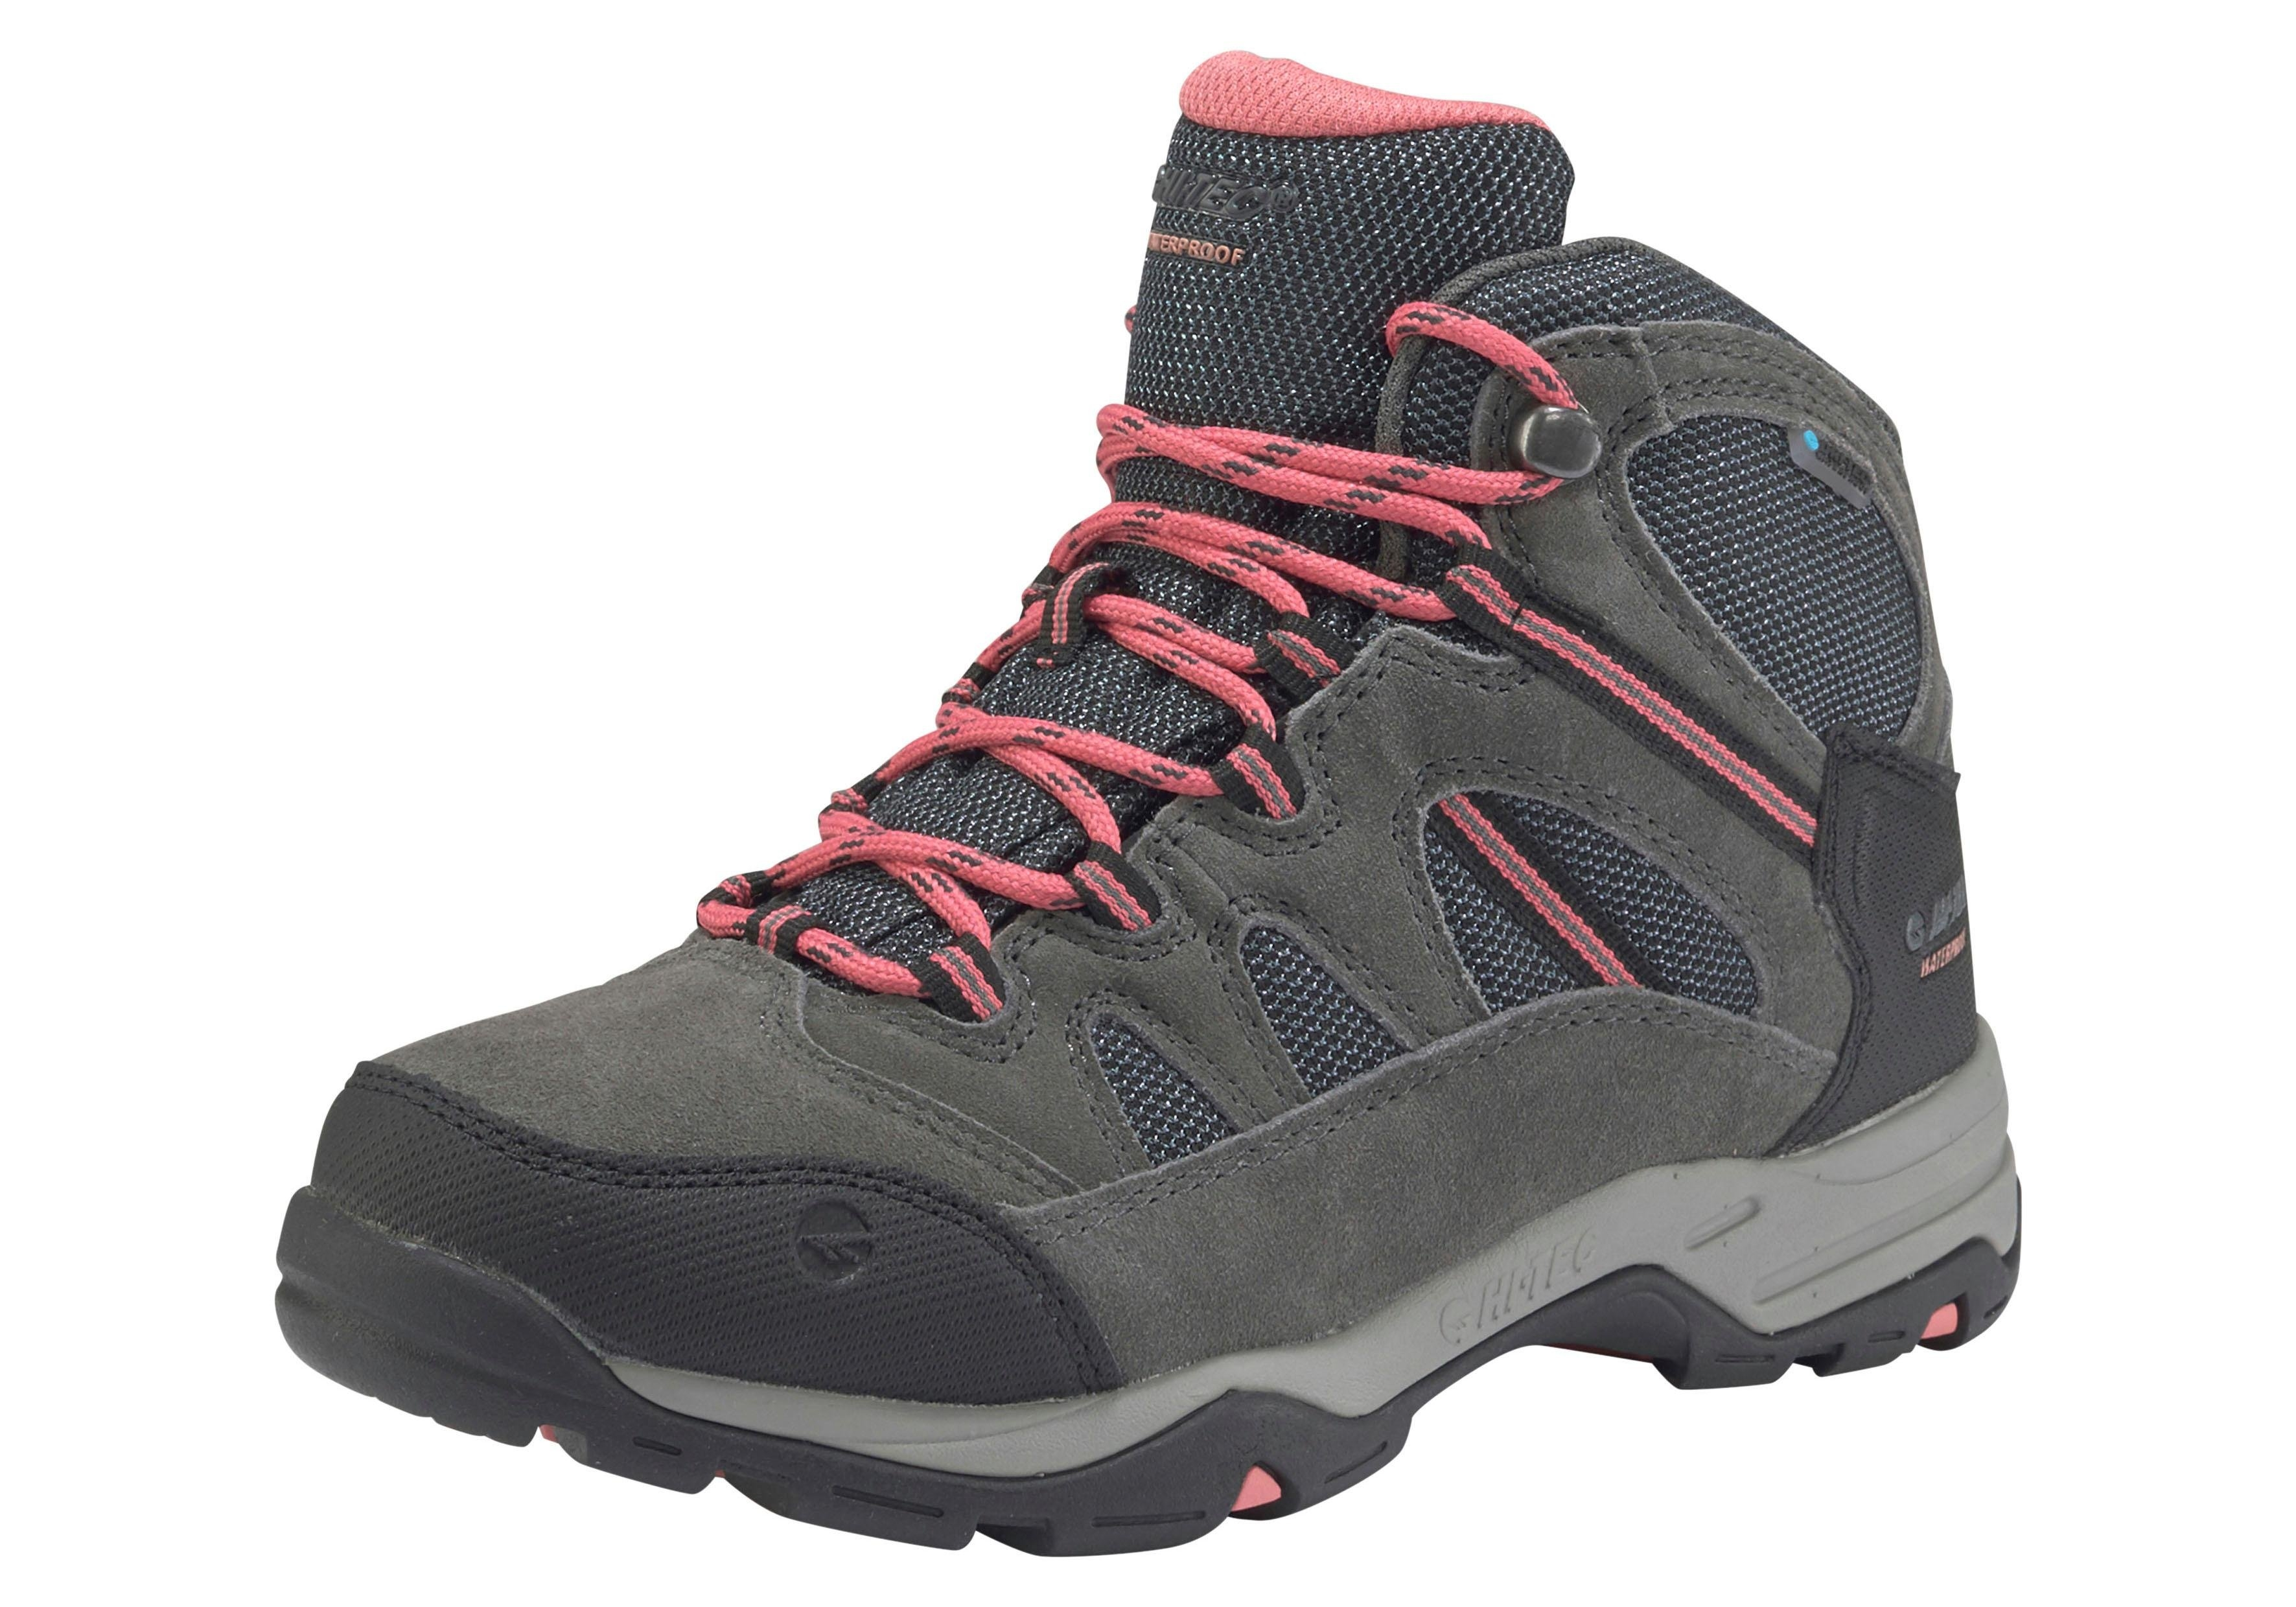 8a90b7a40ac ... »Terrex AX2 Climaproof W«, The North Face outdoorschoenen »W VENTURE  FASTPACK II Gore-Tex«, Outdoorschoenen, Jack Wolfskin, 'TRAILRIDER TEXAPORE  WOMAN'